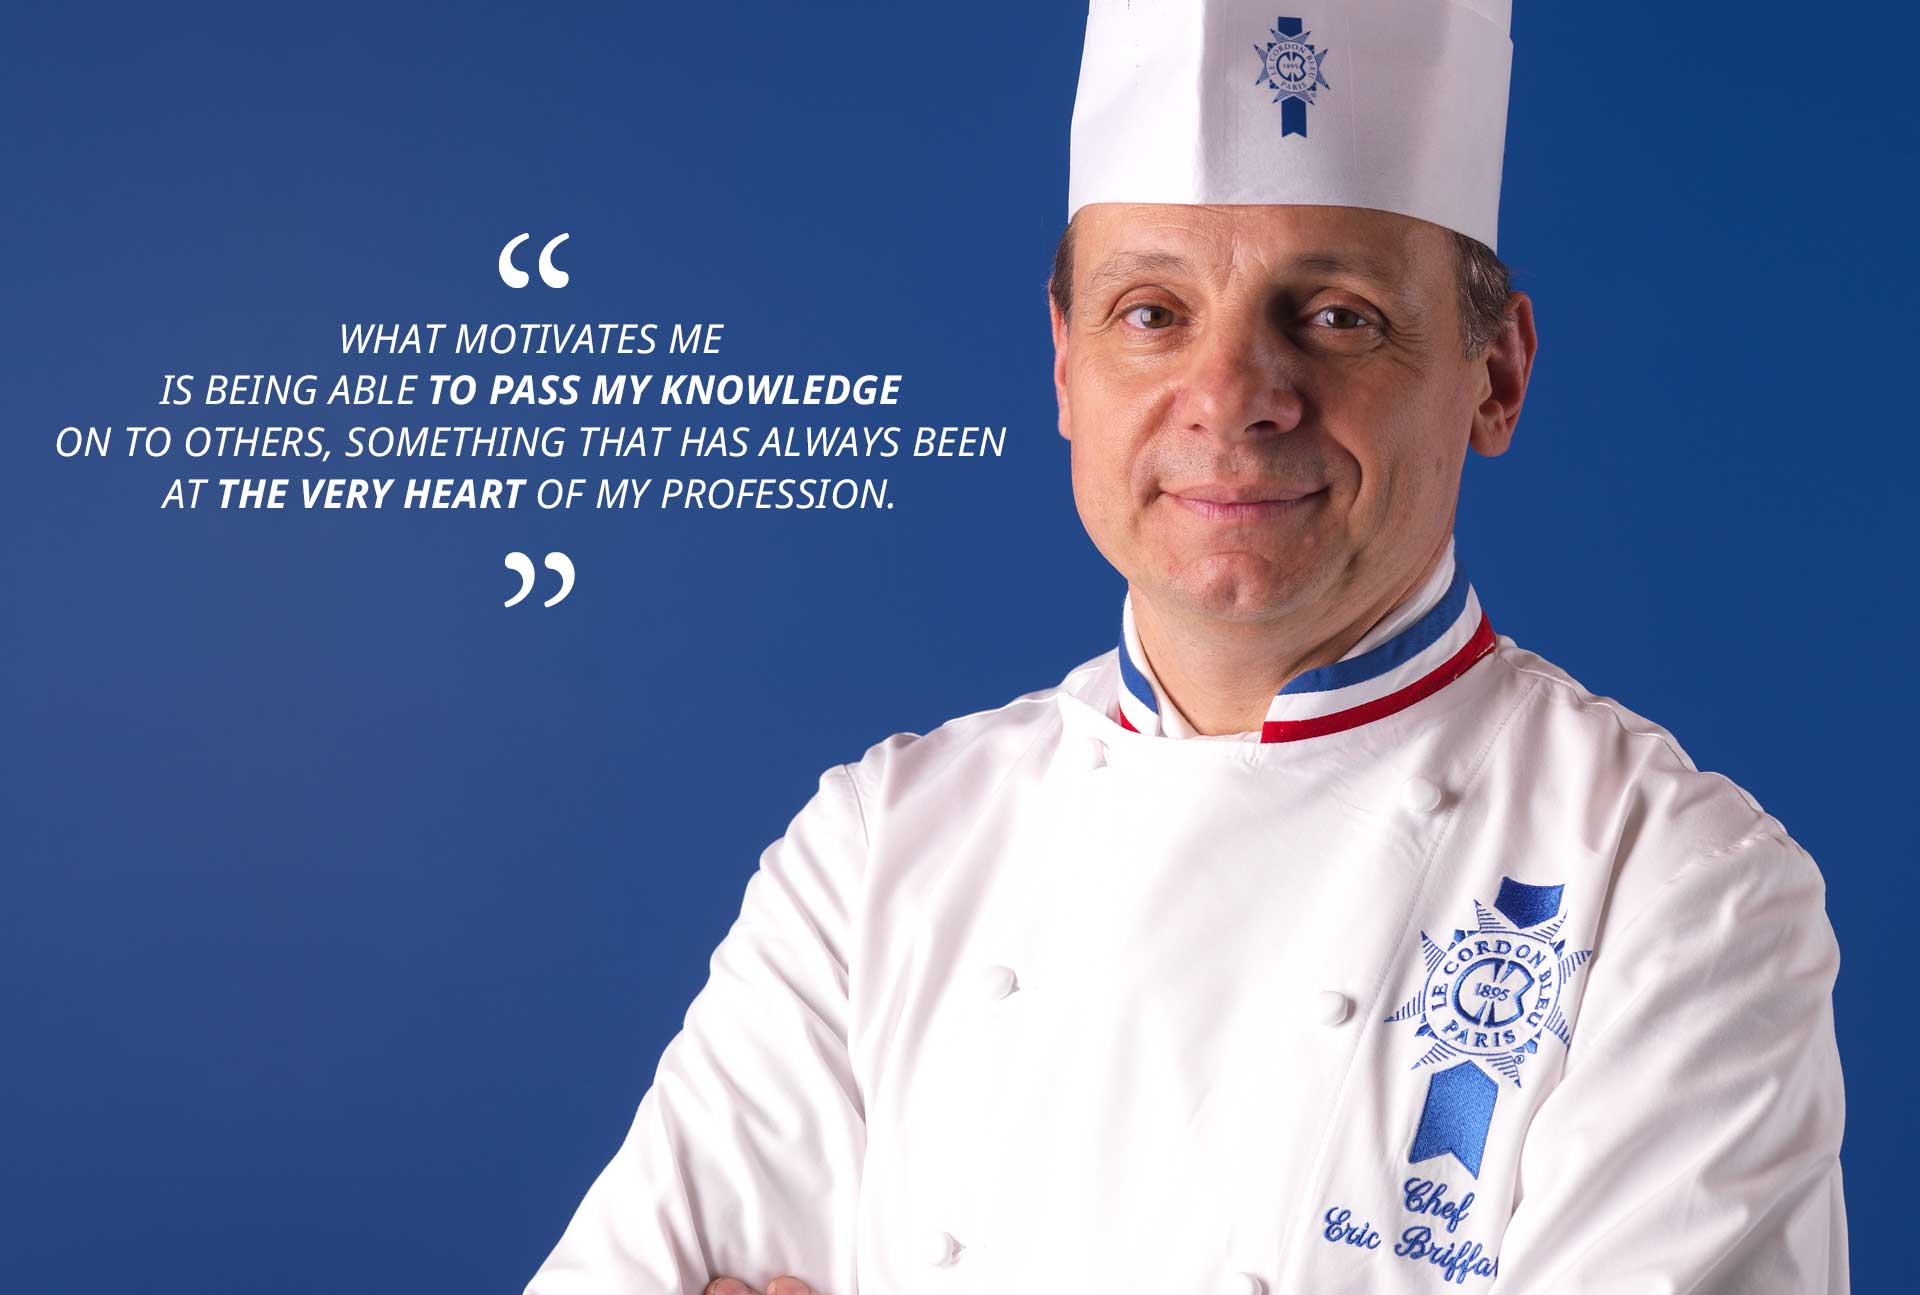 Eric Briffard, culinary arts director at Le Cordon Bleu Paris